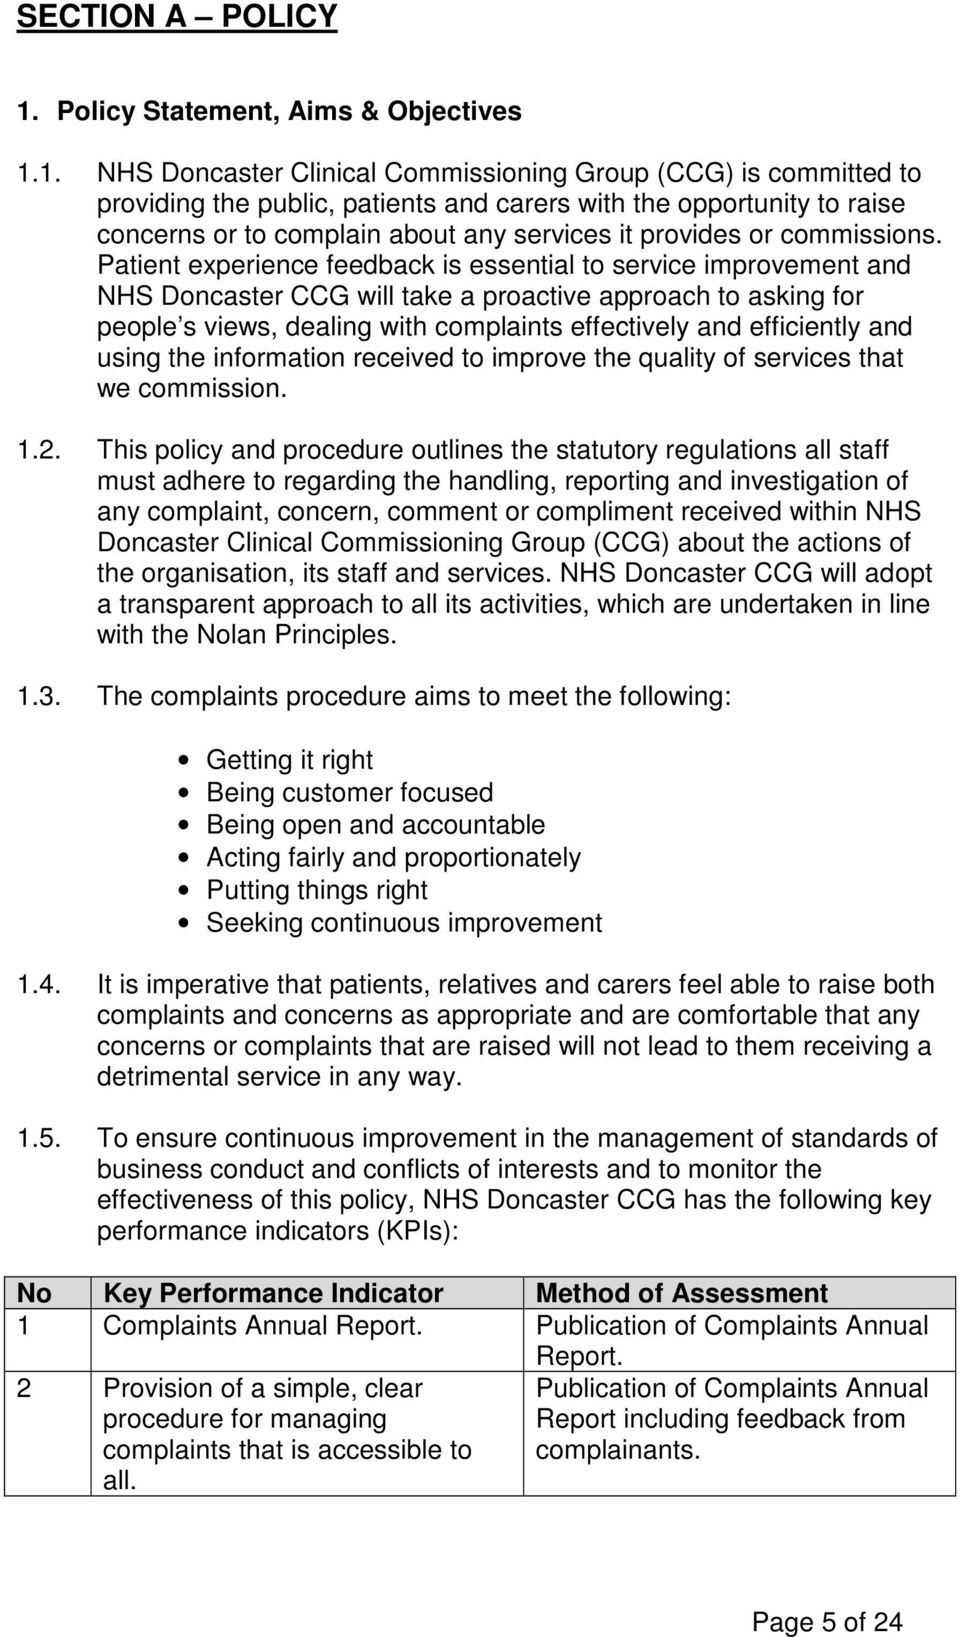 1. NHS Doncaster Clinical Commissioning Group (CCG) is committed to providing the public, patients and carers with the opportunity to raise concerns or to complain about any services it provides or